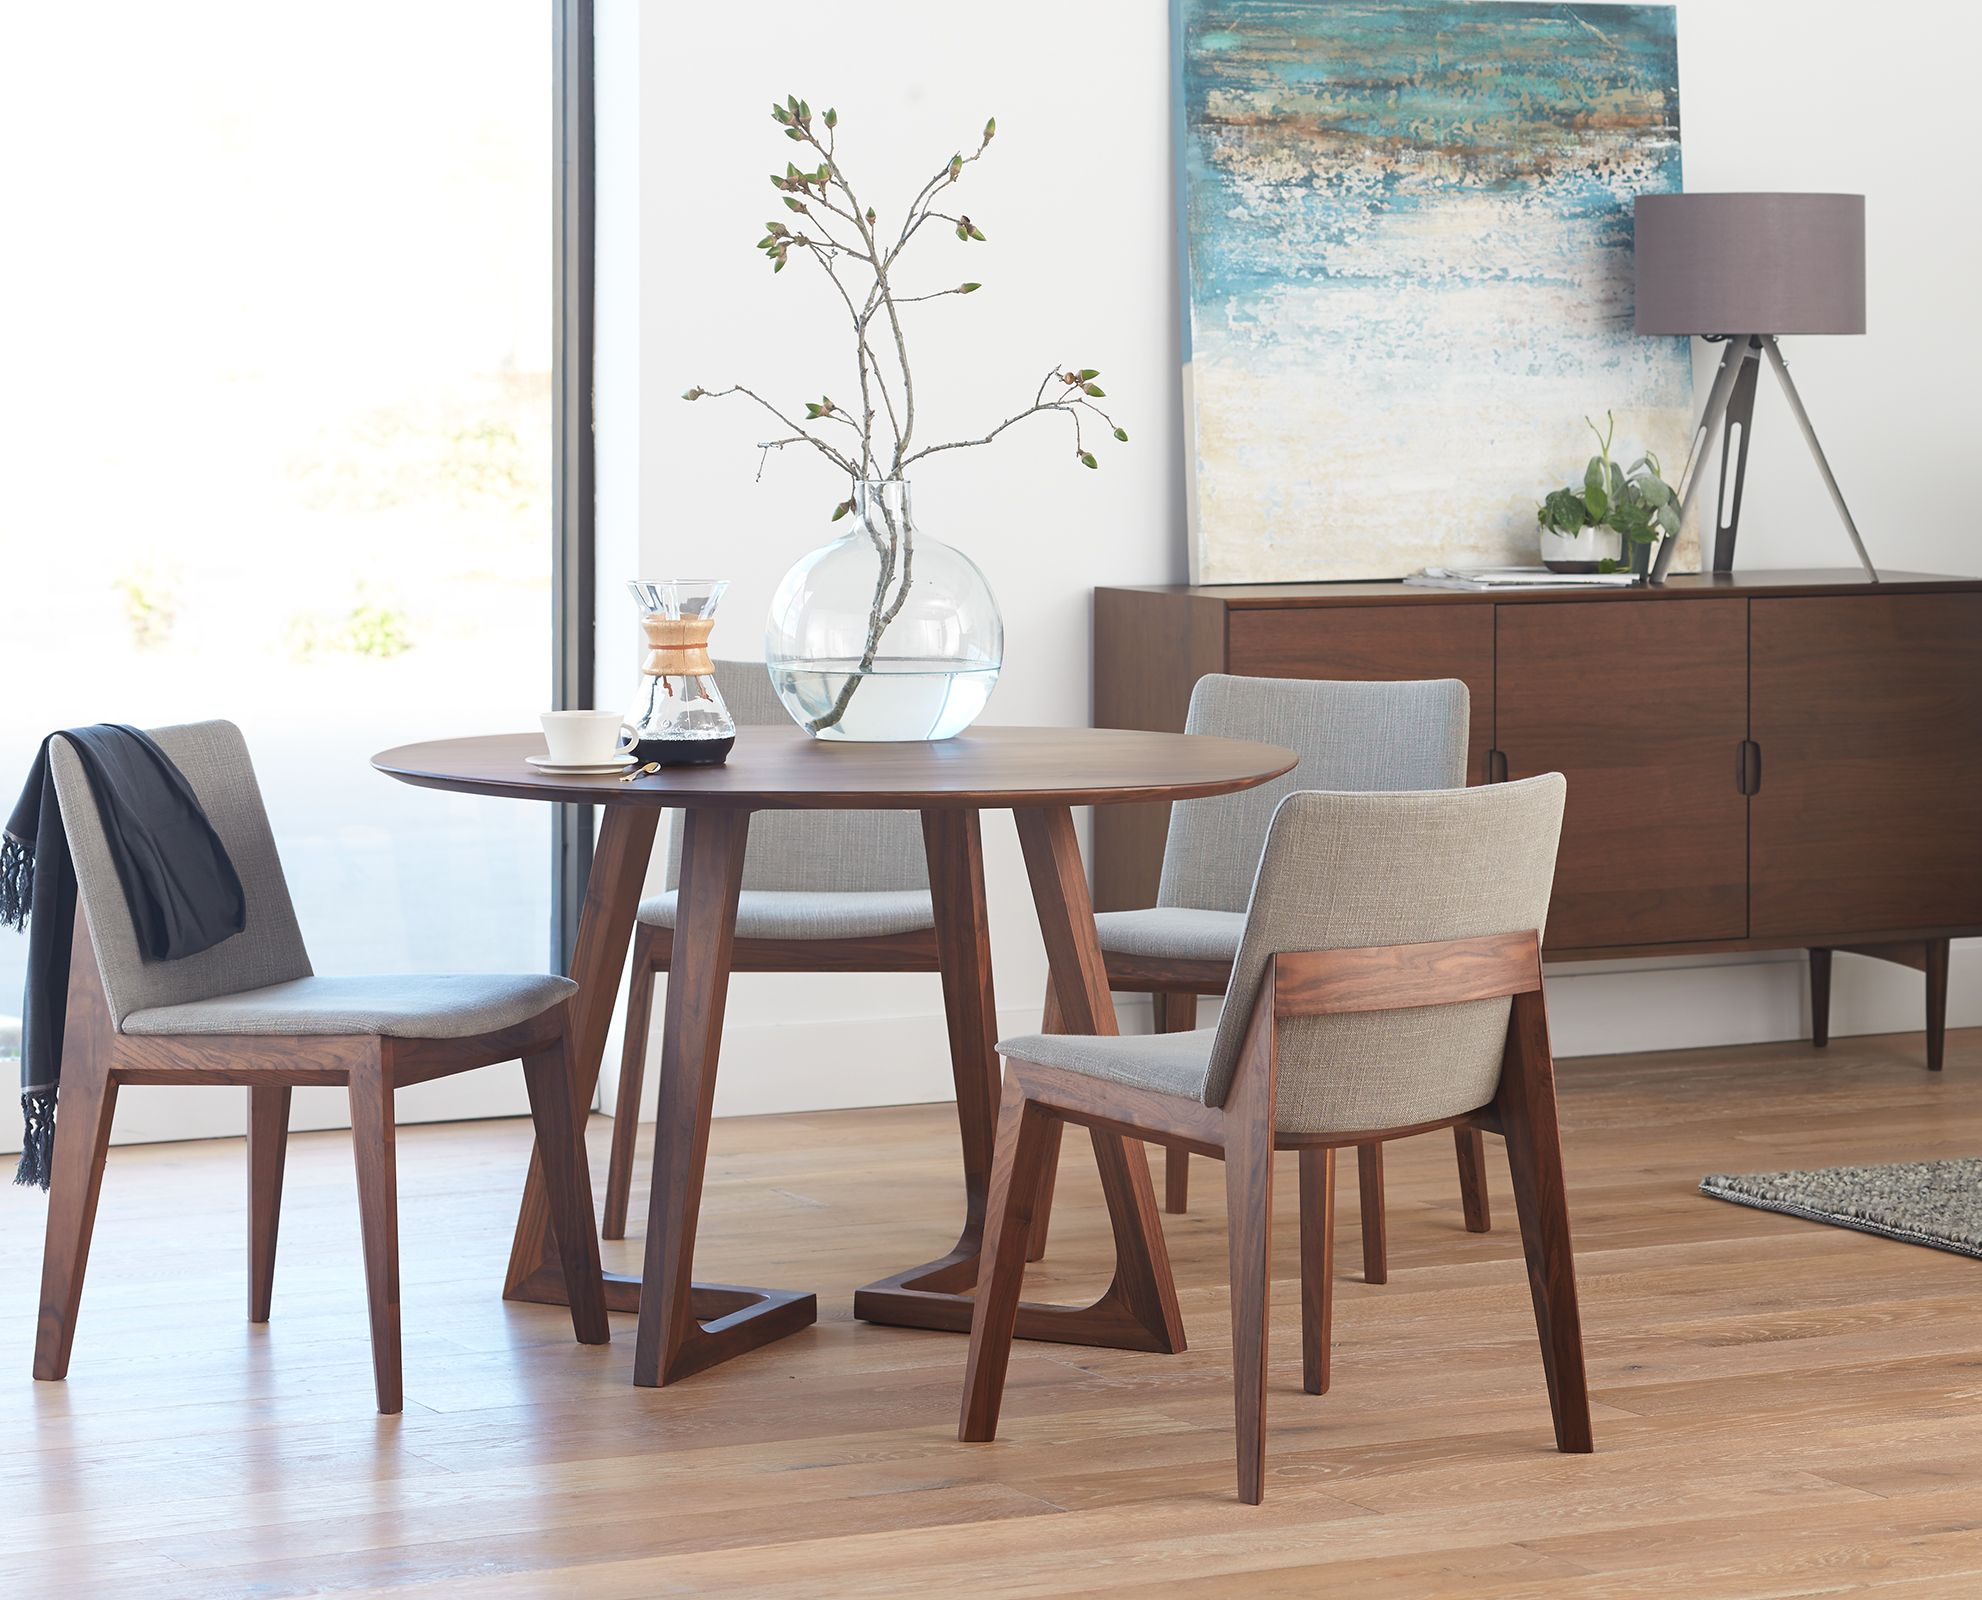 Round table and chairs from dania condo pinterest for Small dining room table and chairs